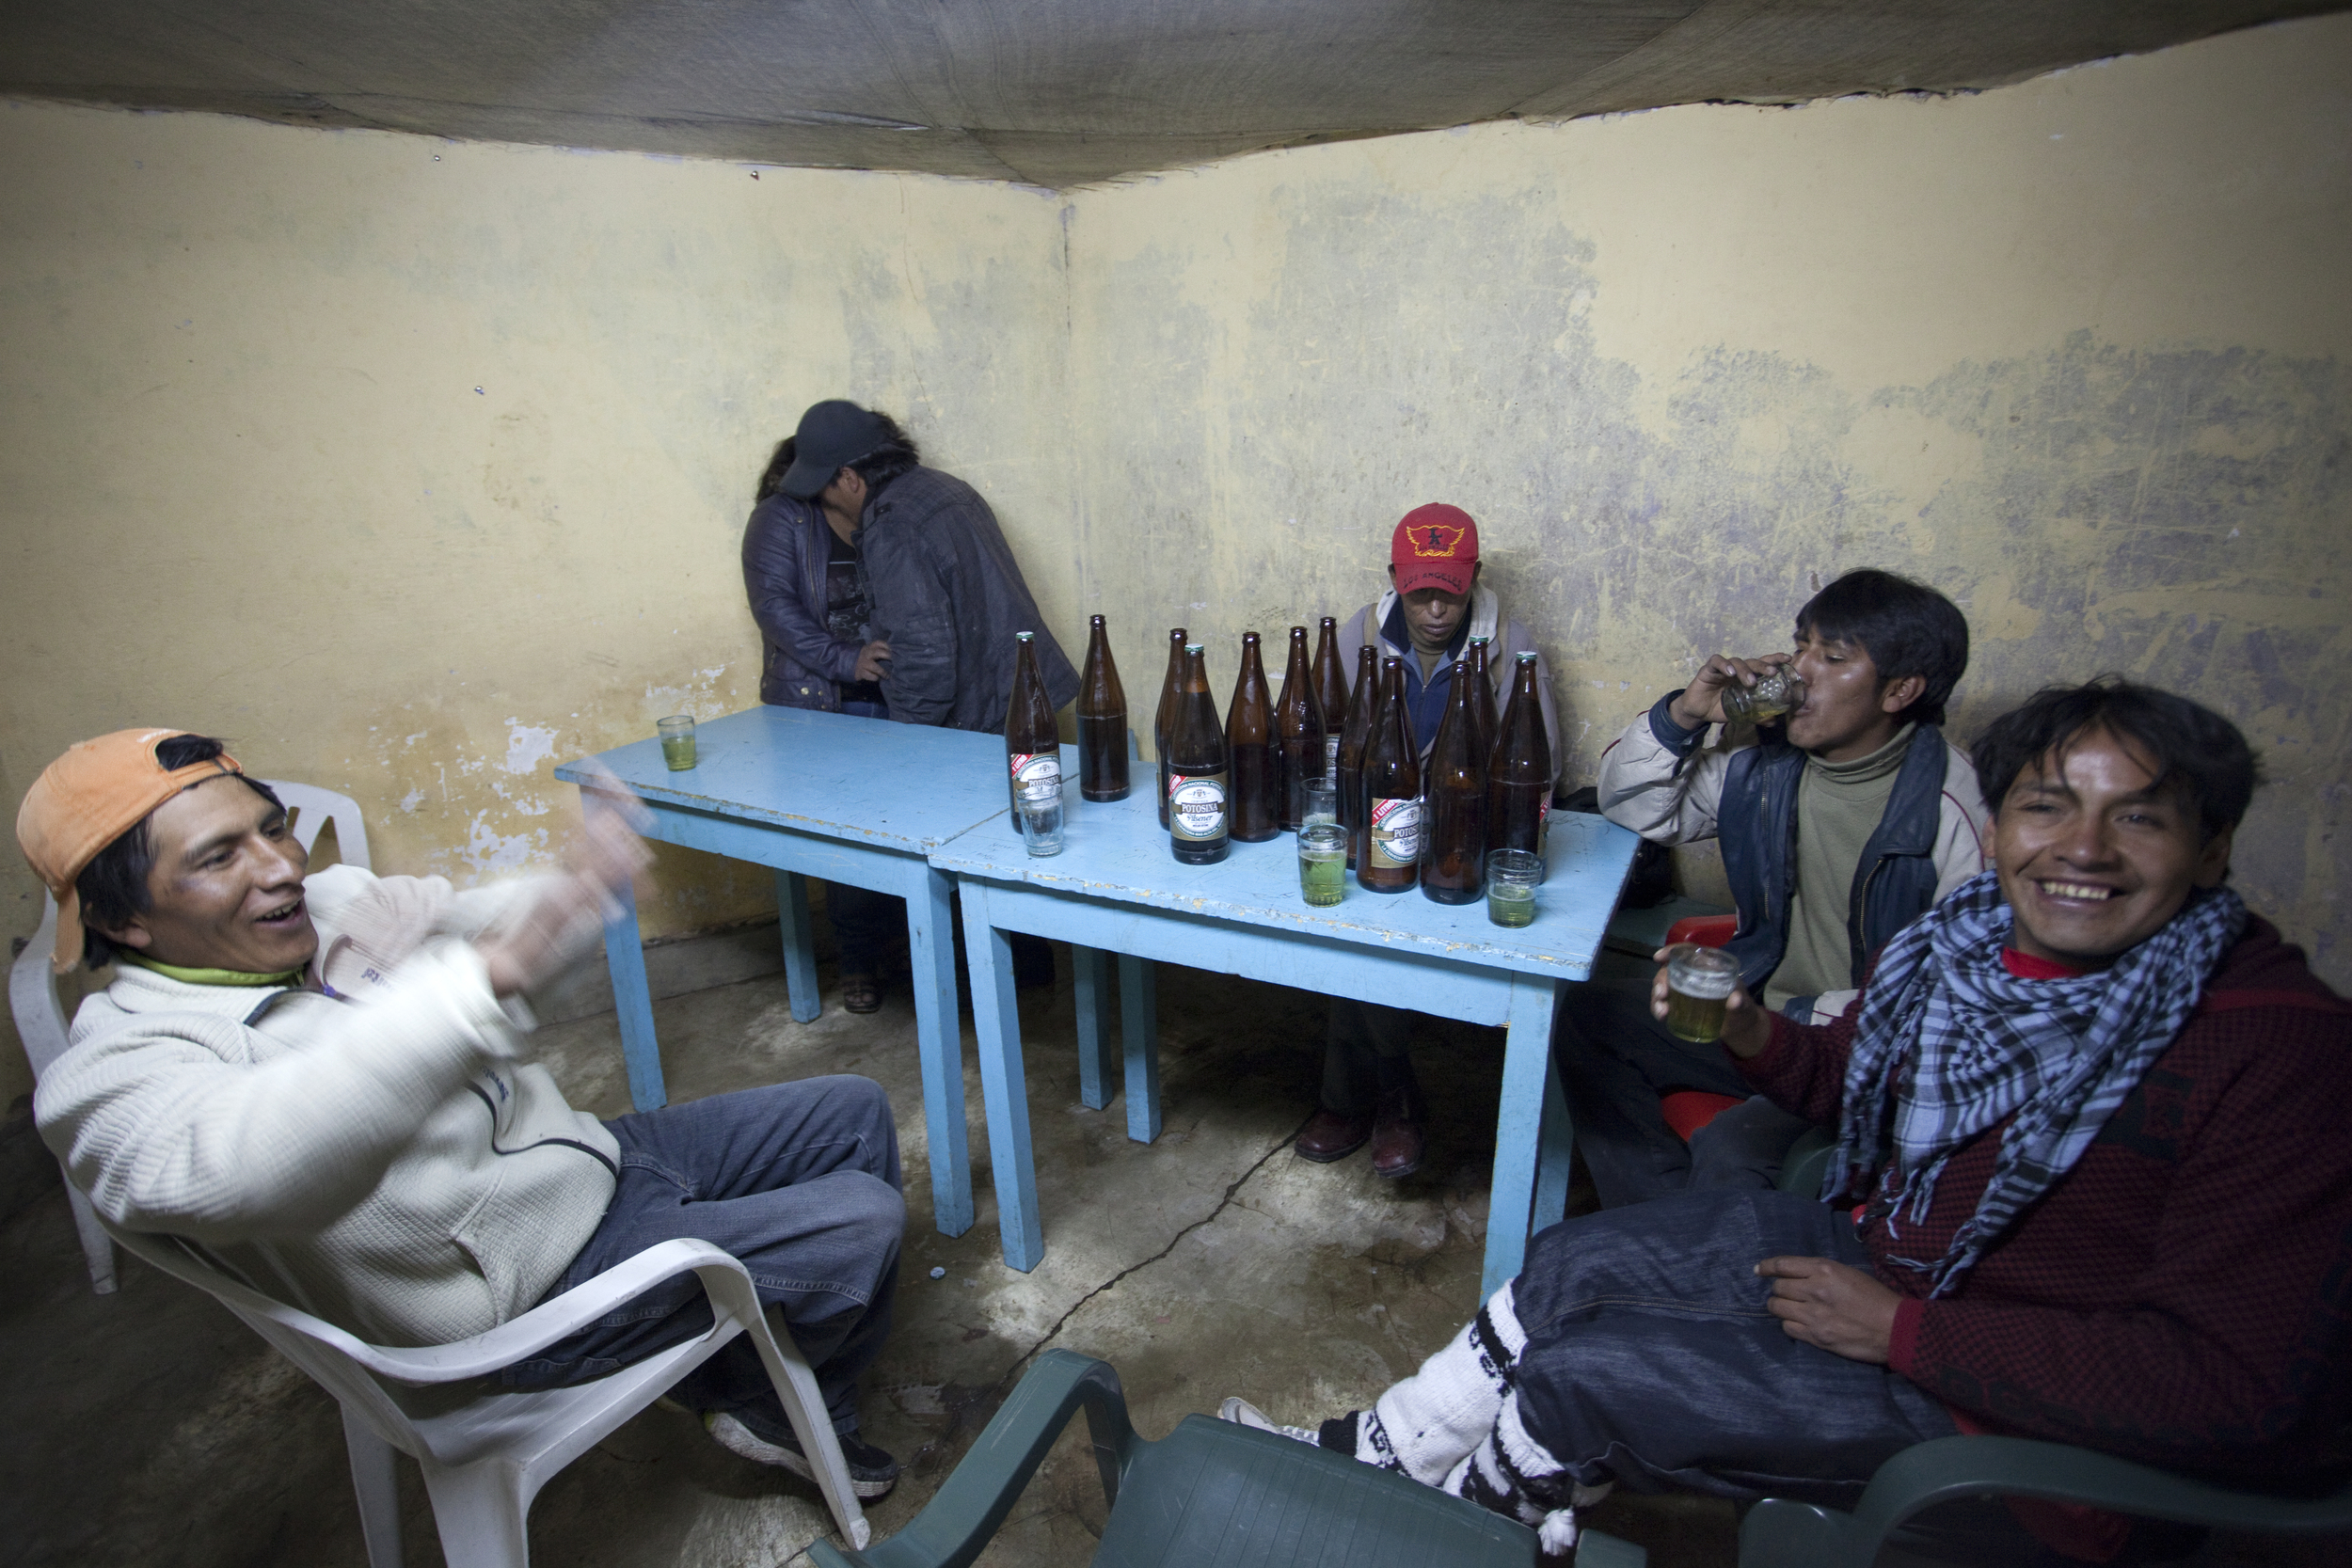 Many of the workers go to the so-called Miners' Bar once they receive their pay.